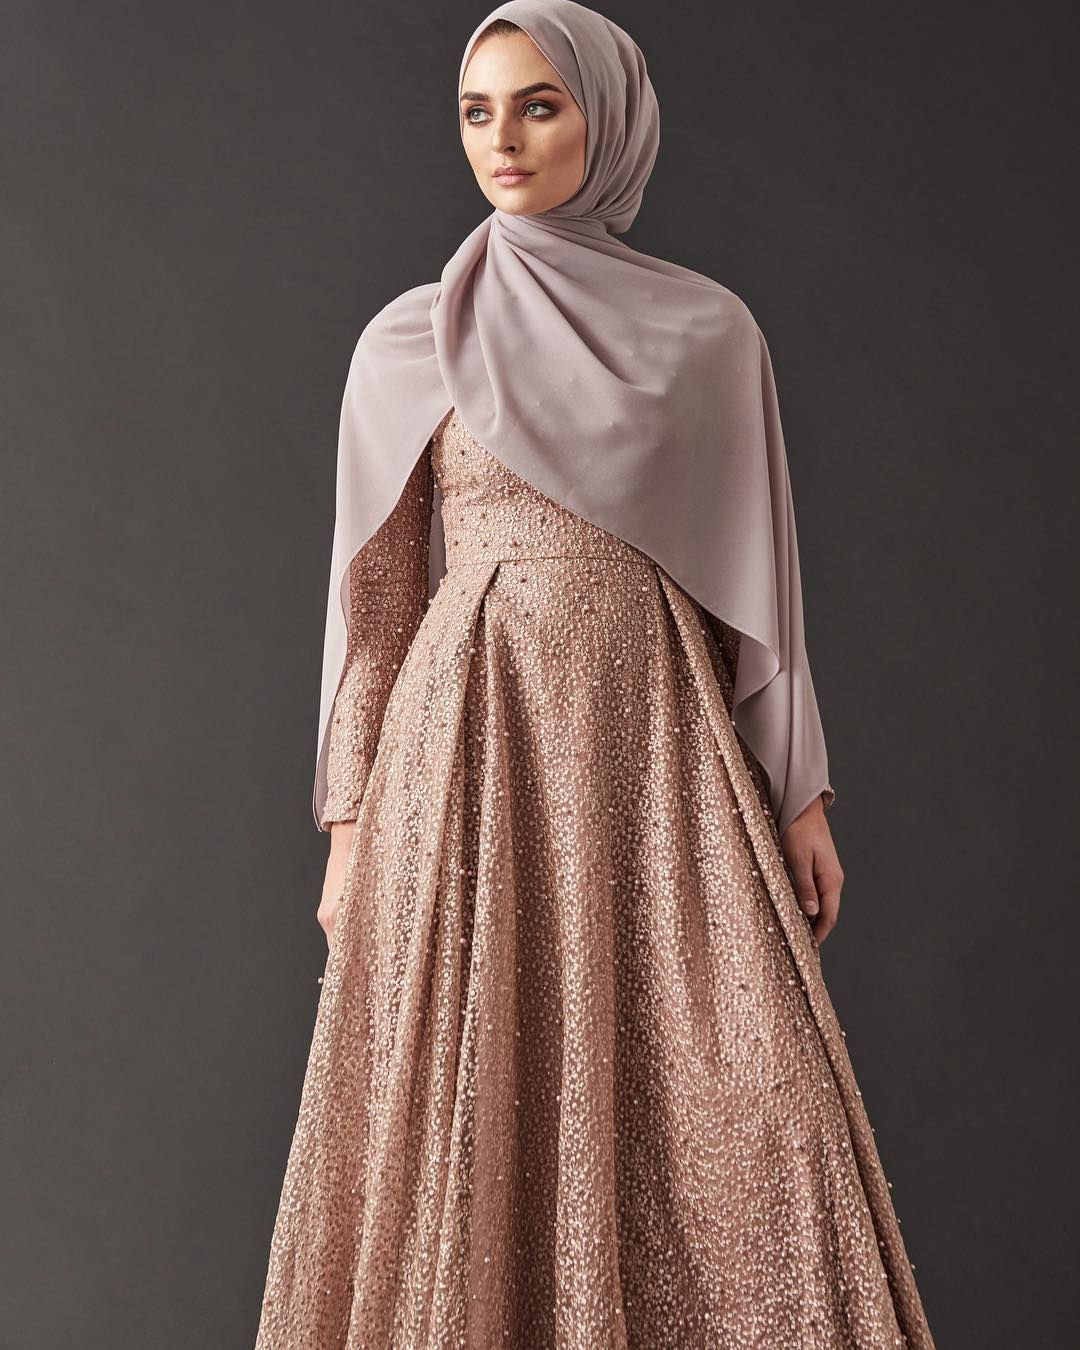 d0ab99808e517 New Occasionwear arrivals launching in the next few days! www.inayah ...